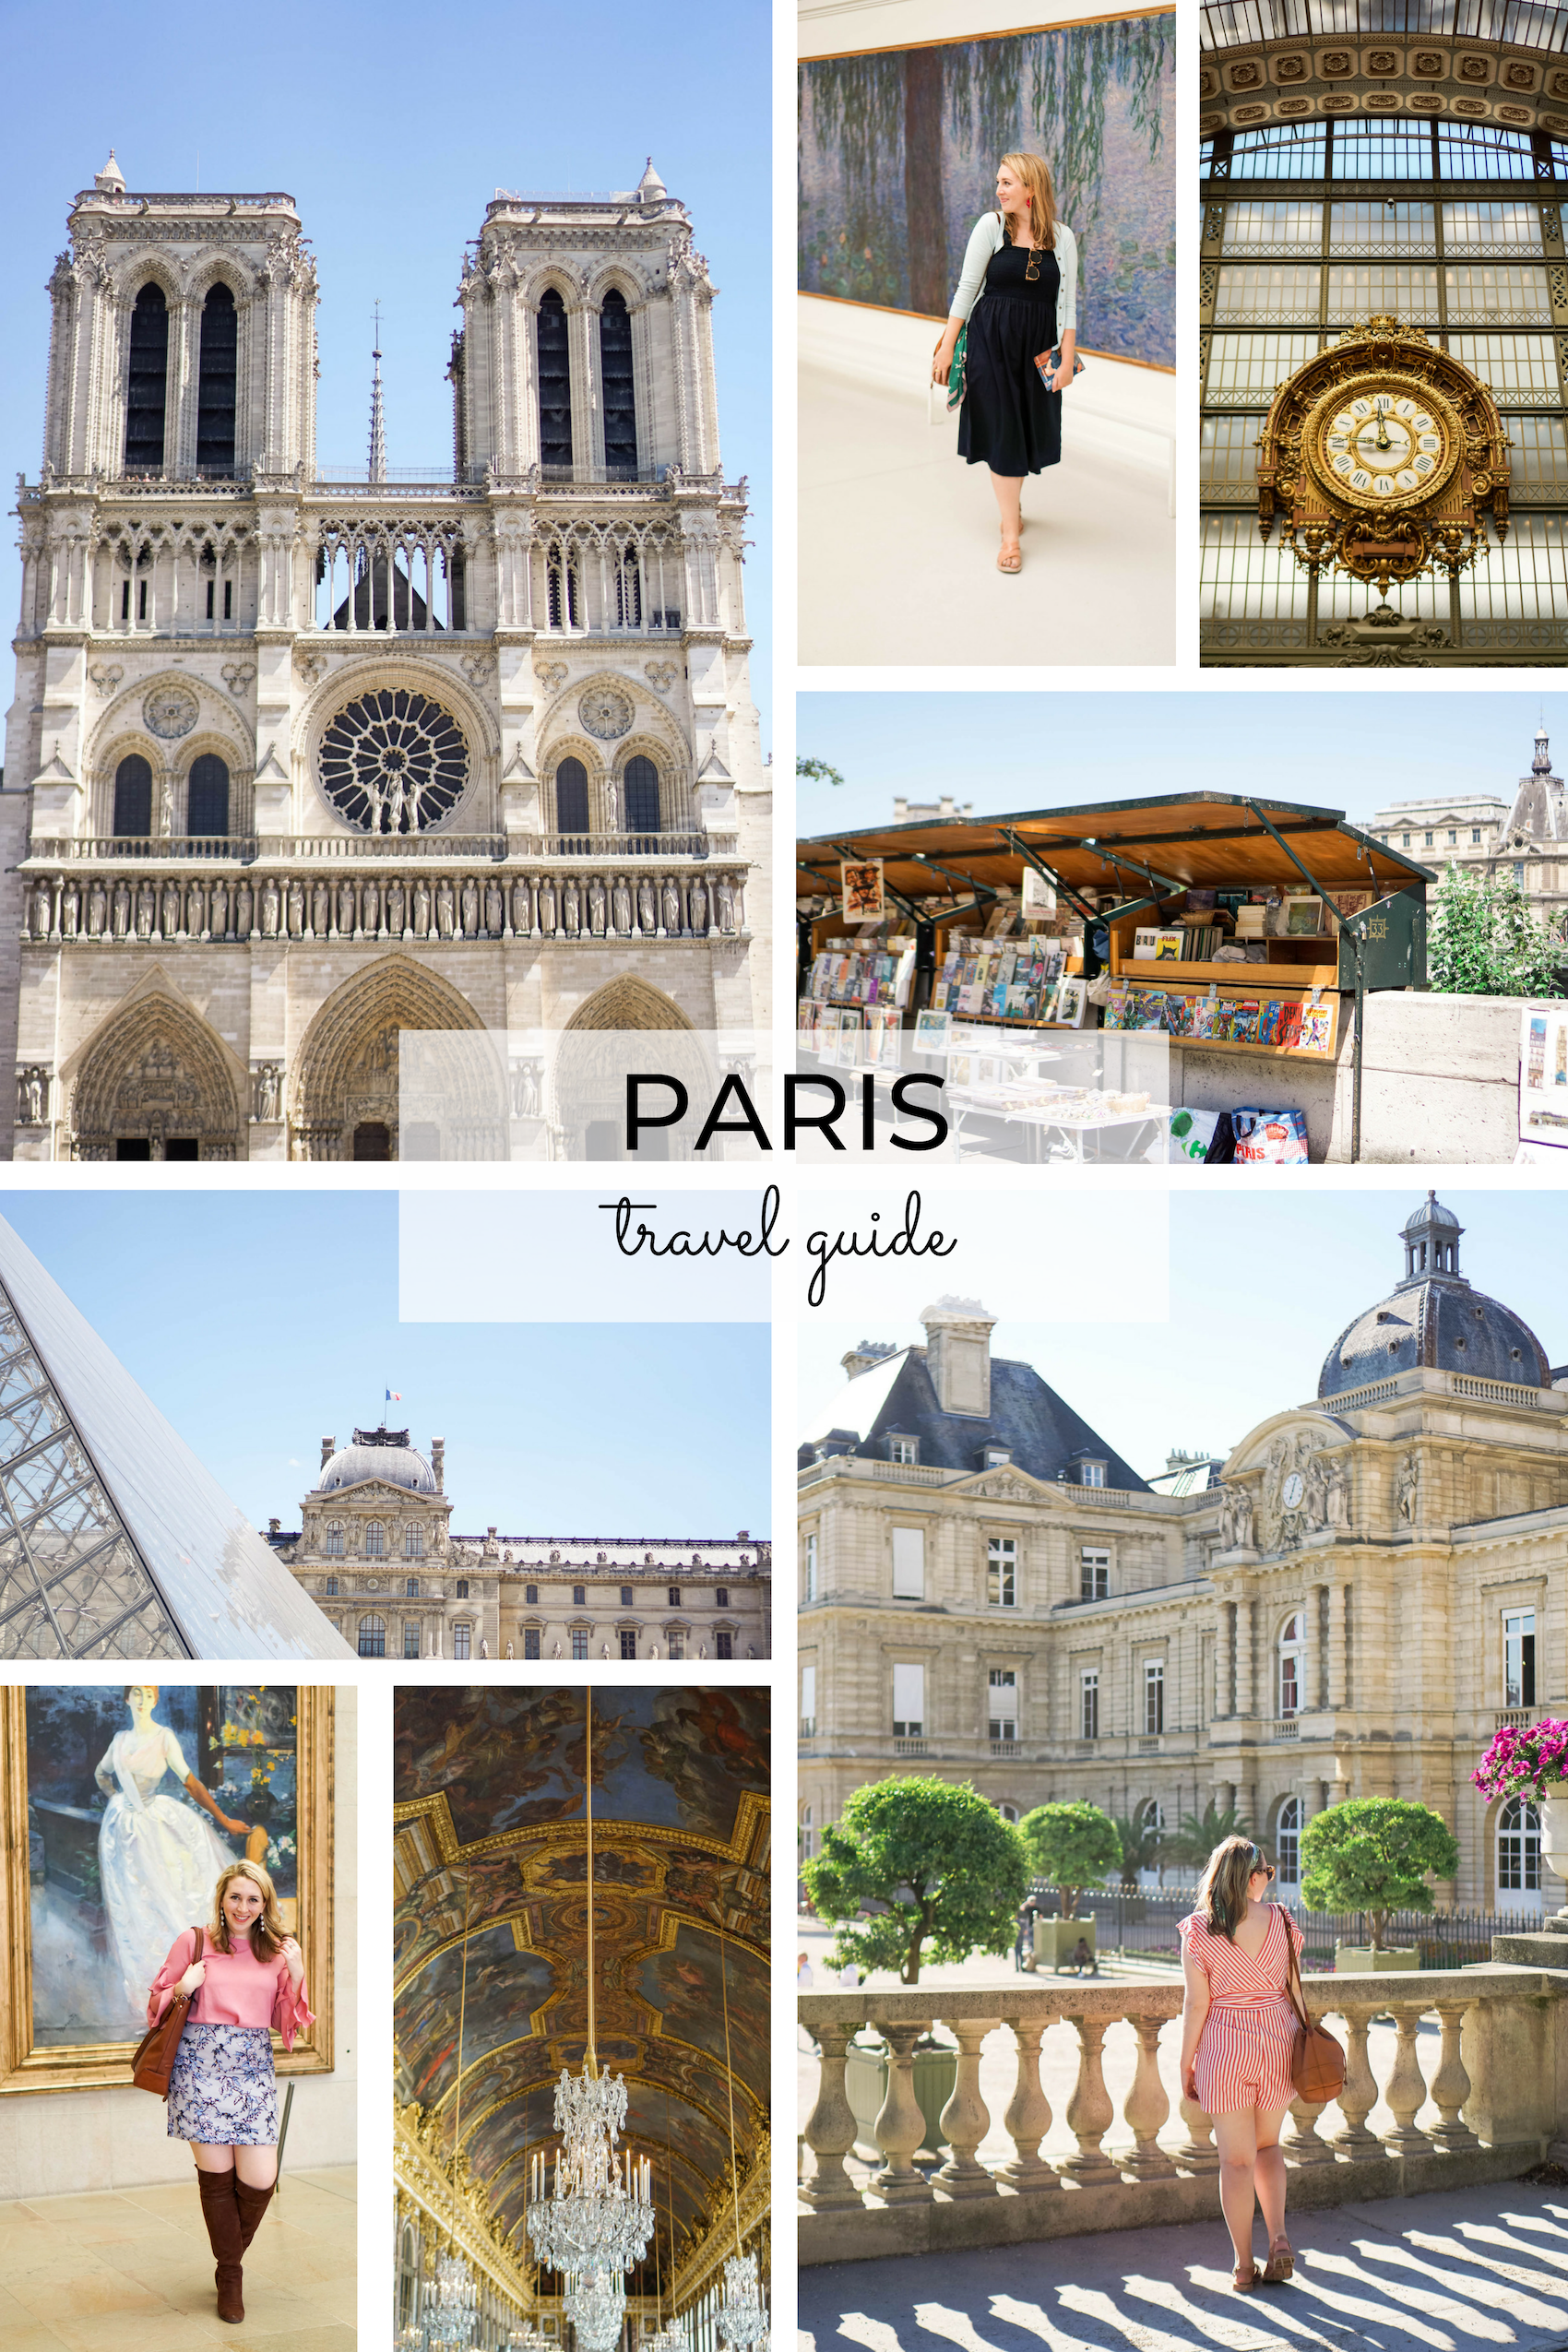 Paris Travel Guide | Where to Eat in Paris| What to Do in Paris | Where to Stay in Paris | Long Weekend in Paris | Paris City Guide by Fashion and Travel Blogger Glitter & Spice